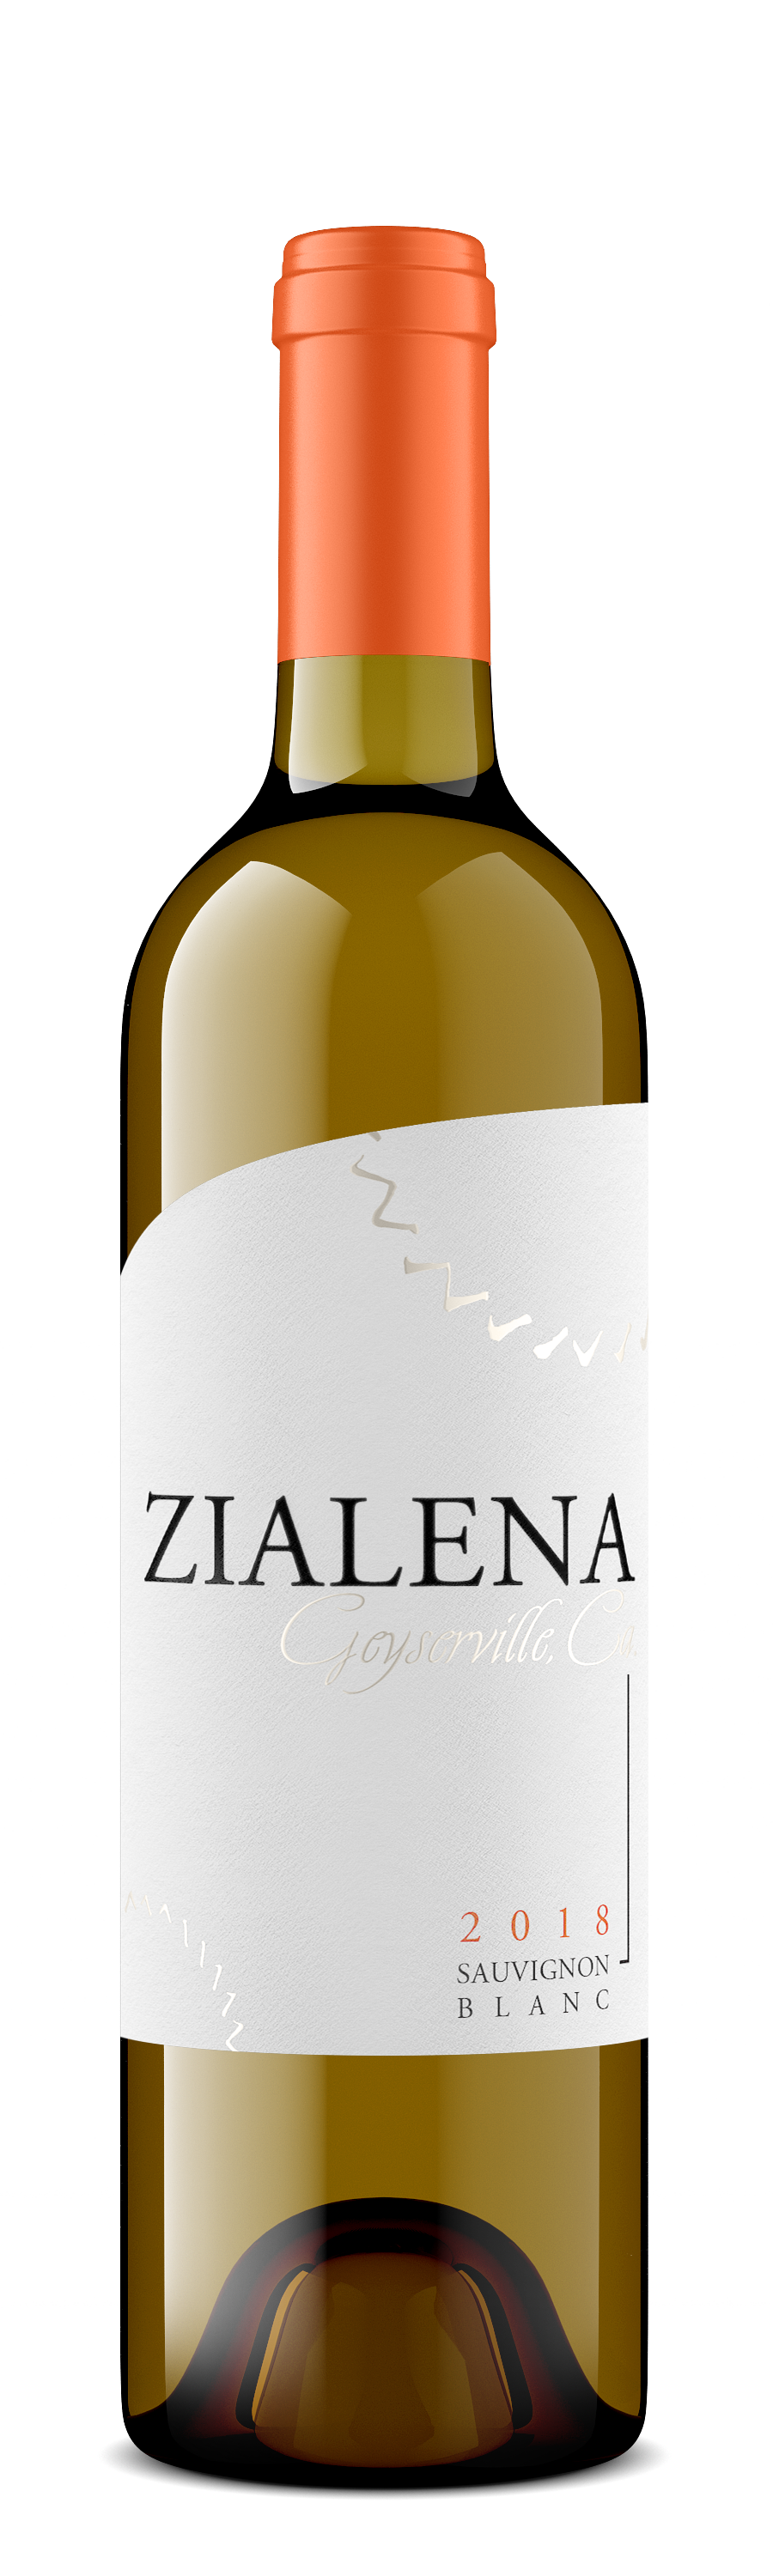 Product Image for 2017 Sauvignon Blanc